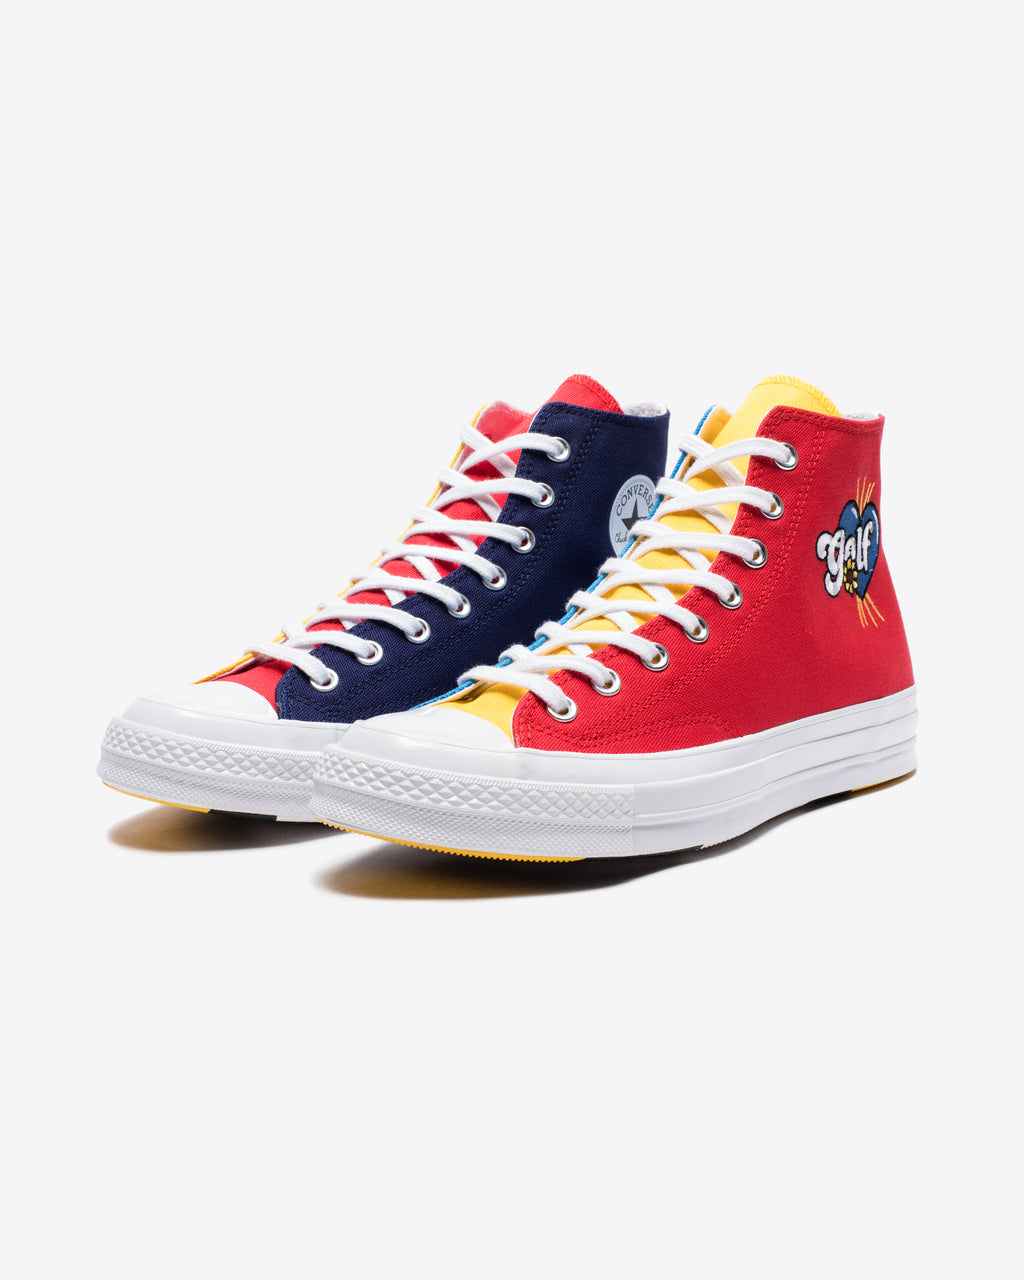 CONVERSE X GOLF CHUCK 70 HI - BLUE/ YELLOW/ RED